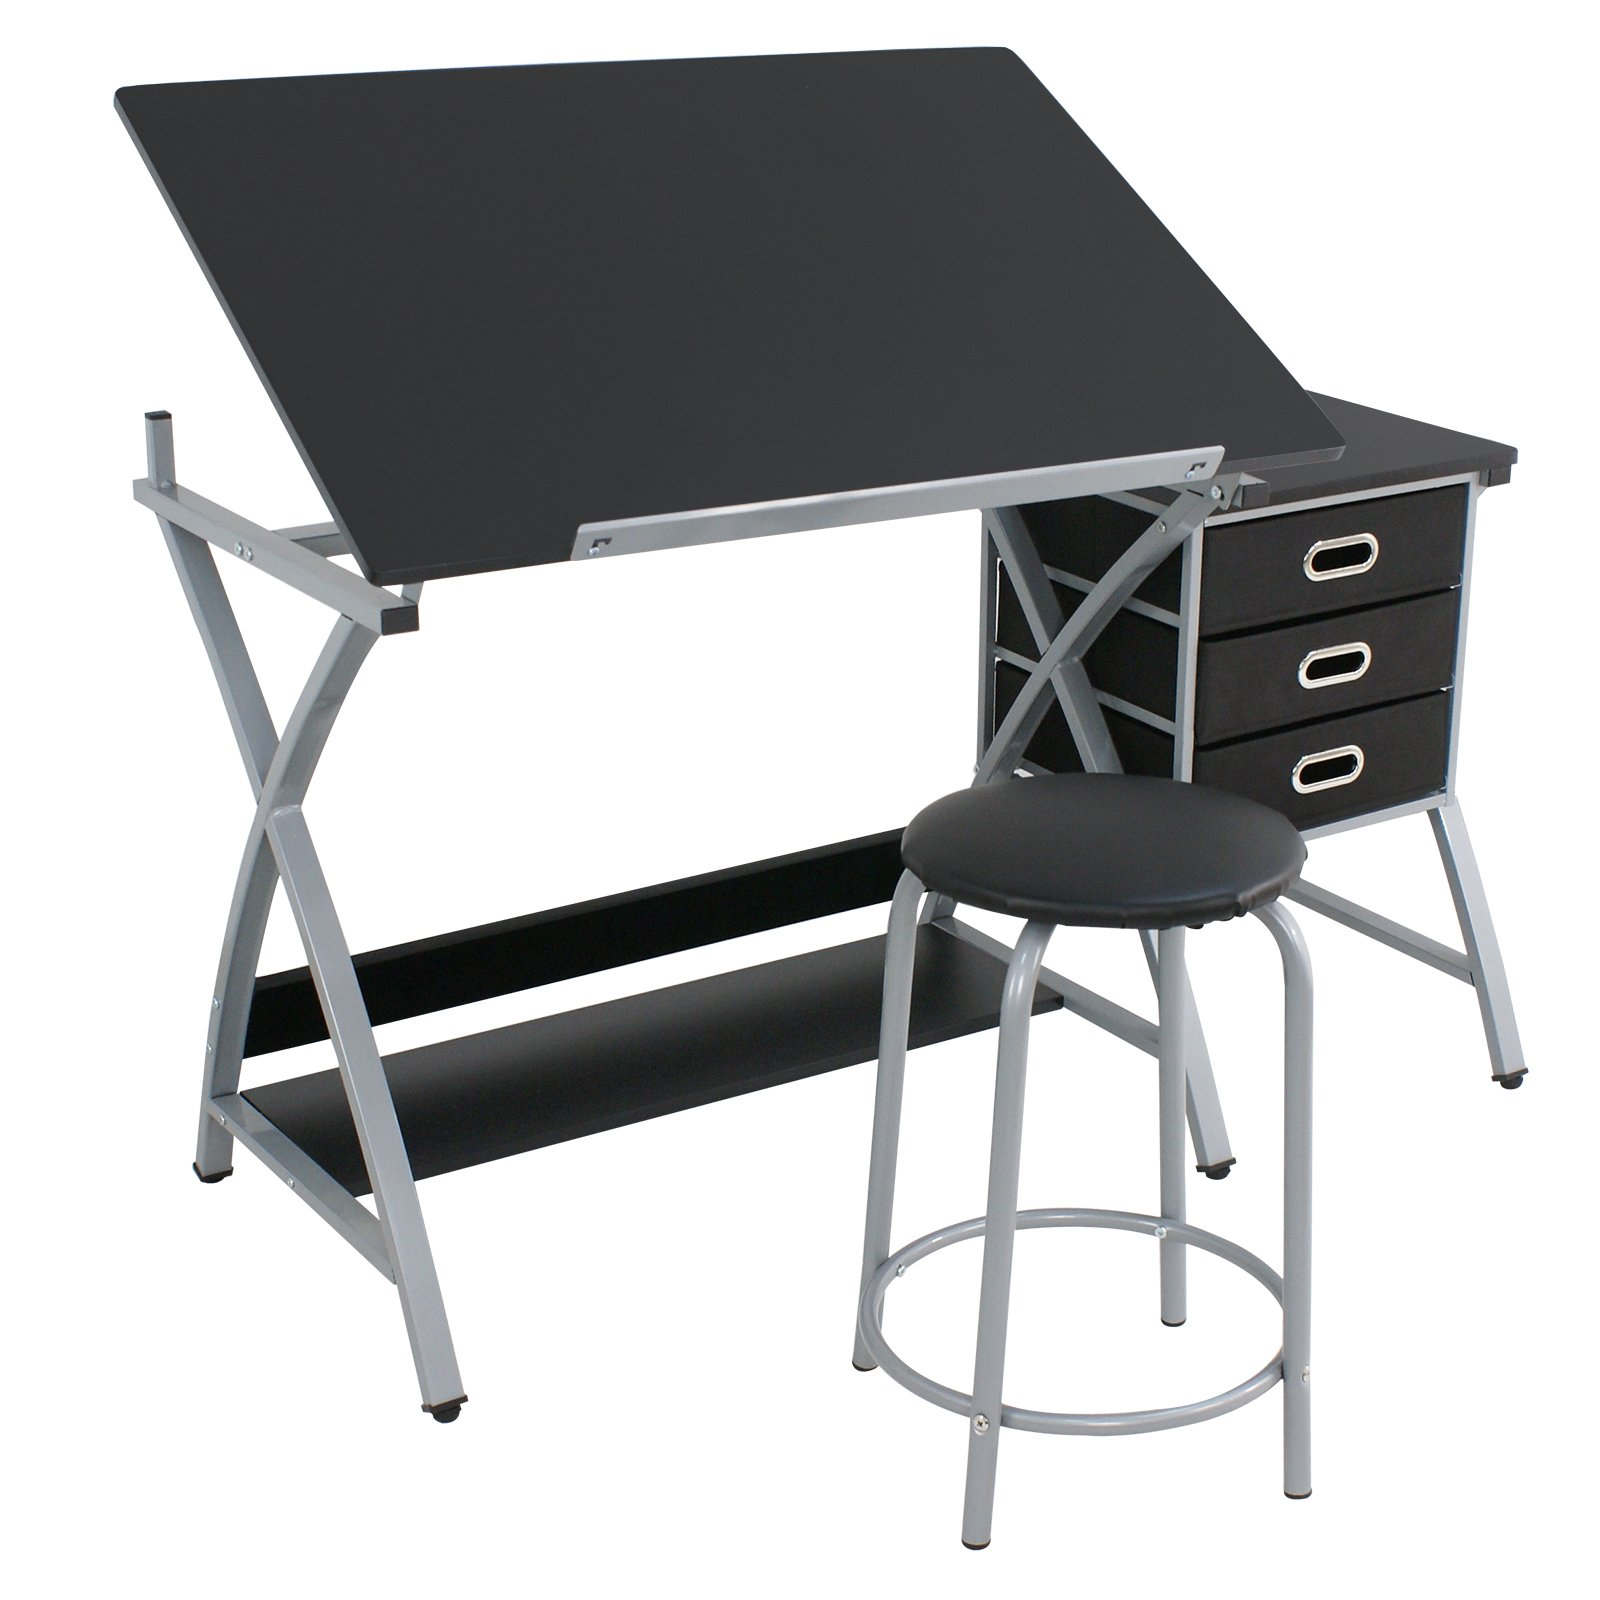 F2C Folding Adjustable Drawing Table Desk Craft Station Art Craft Hobby Drafting Table Desk with Stool and Drawers, Black